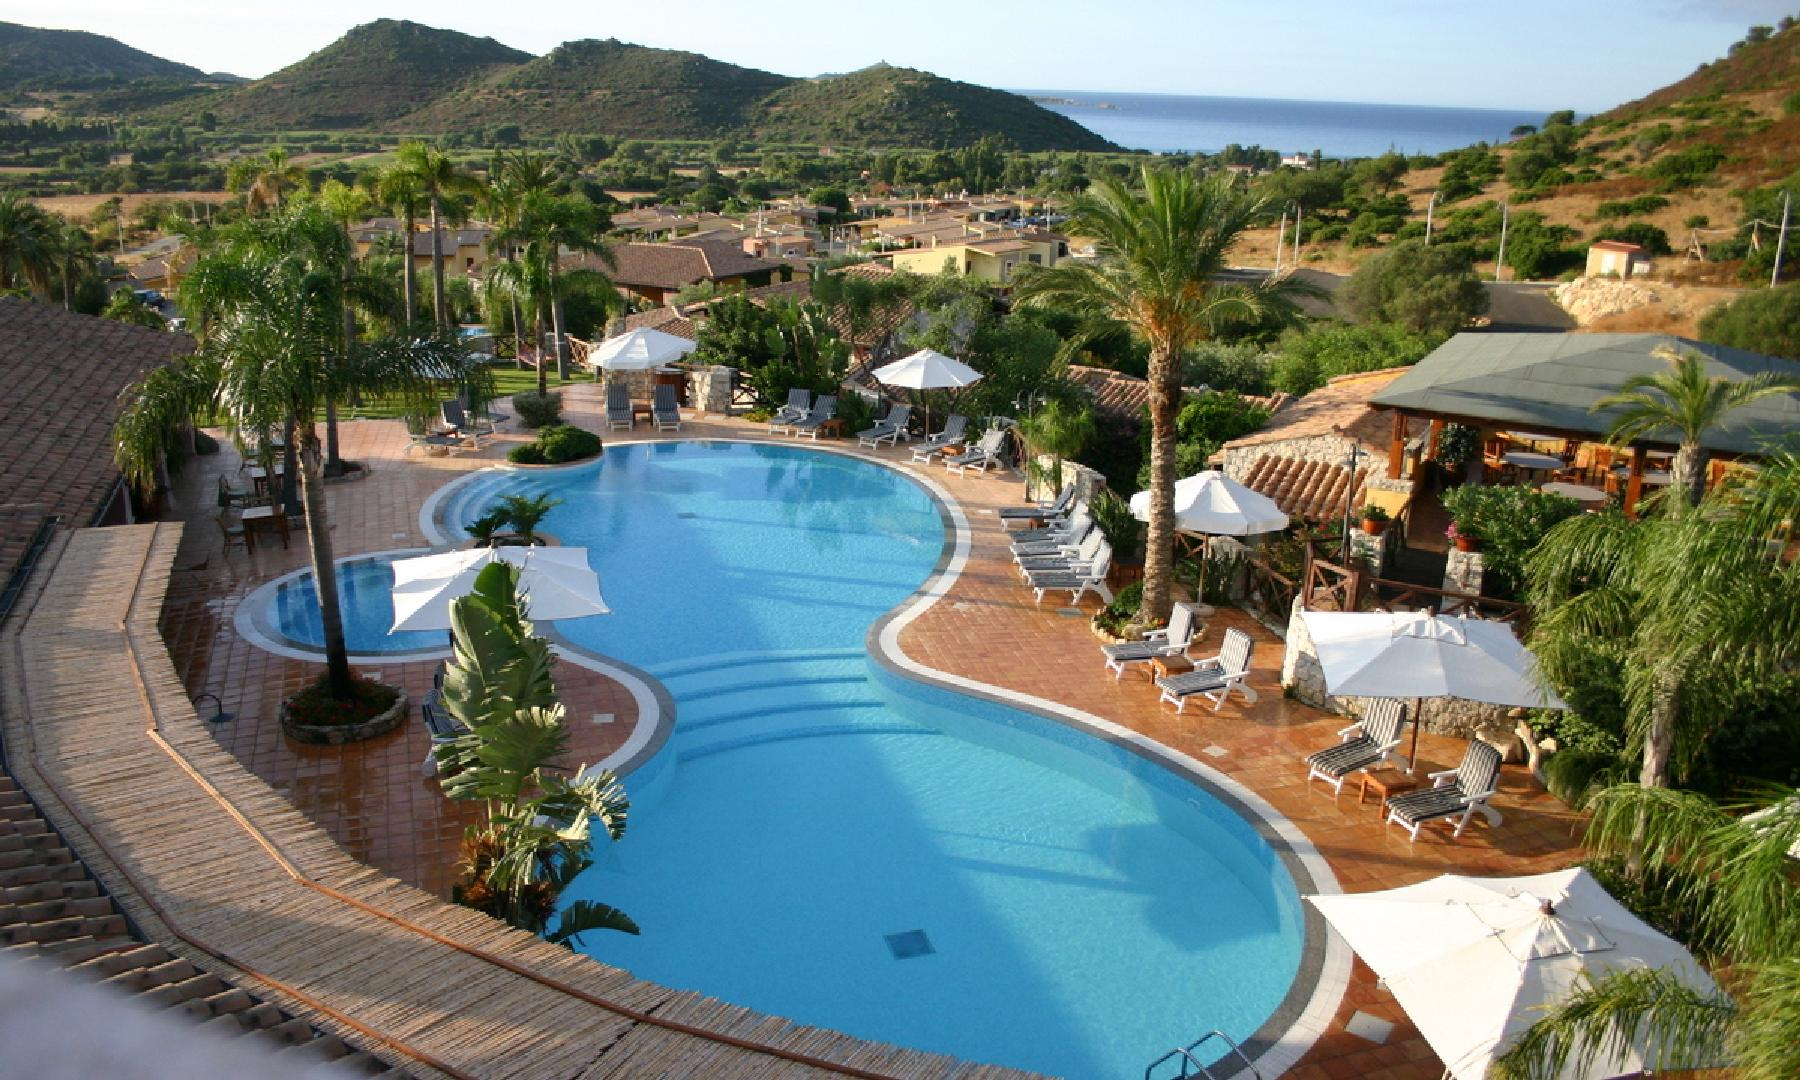 Cruccuris Resort, Sardegna